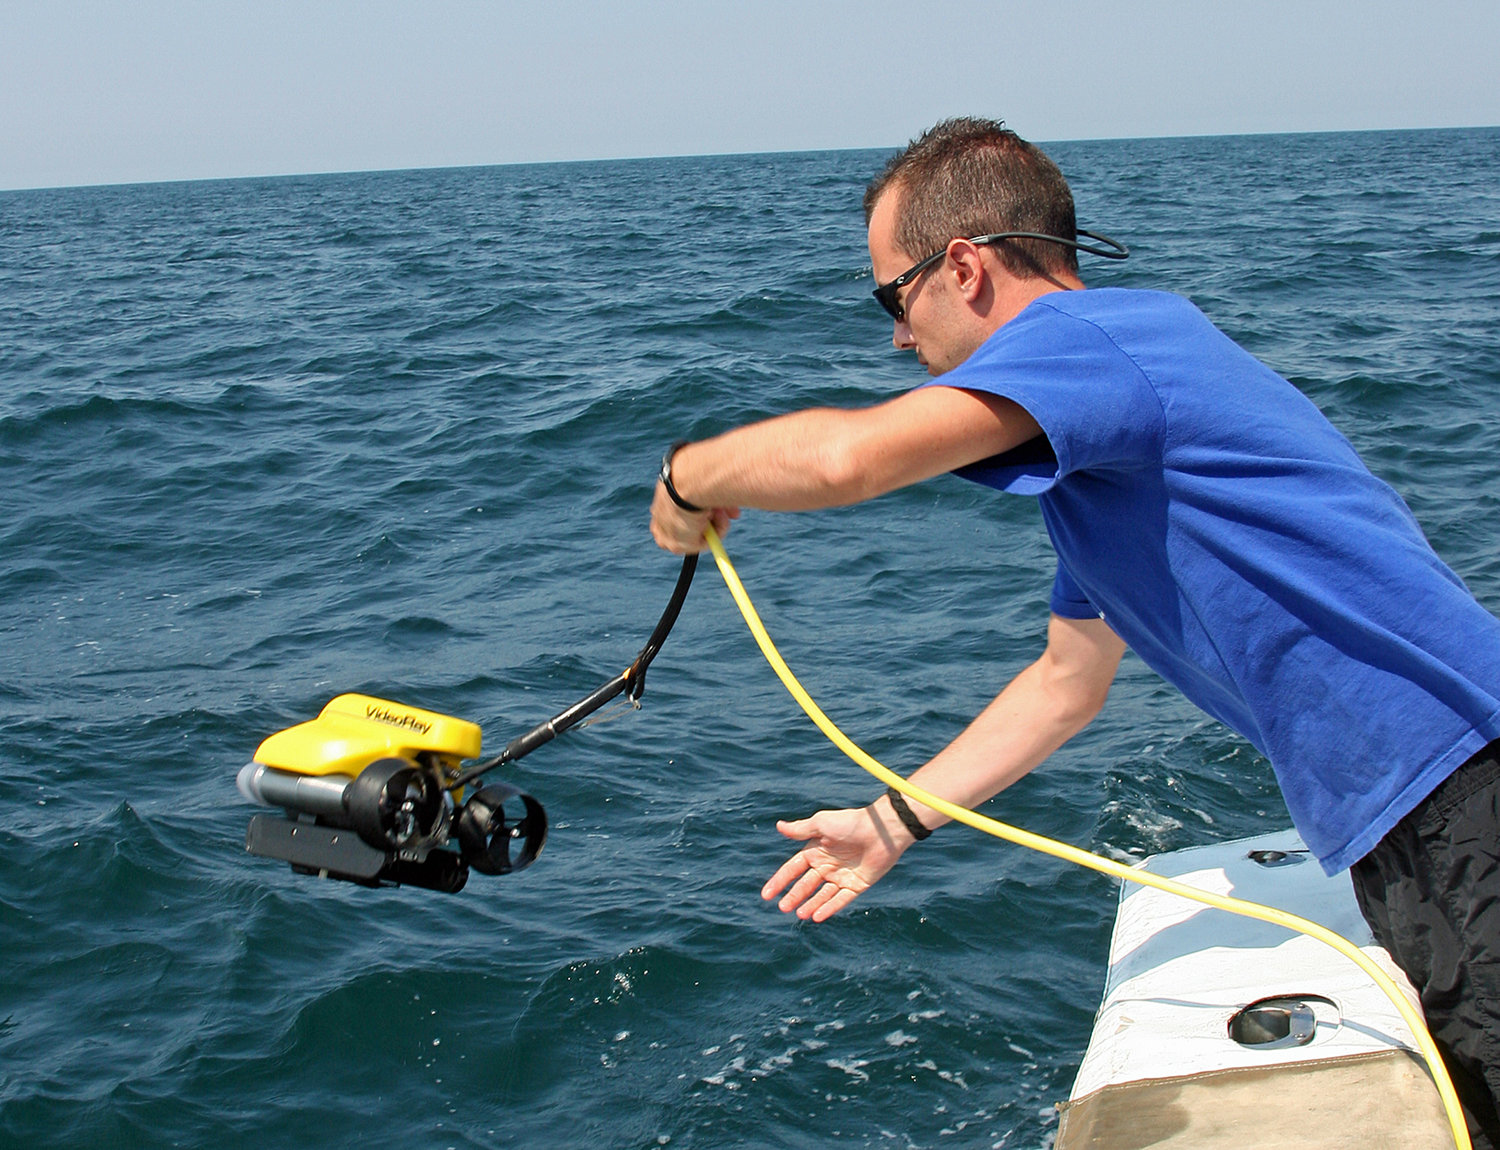 Scientists in the study used ROVs (remotely operated vehicles) to monitor and count red snapper.